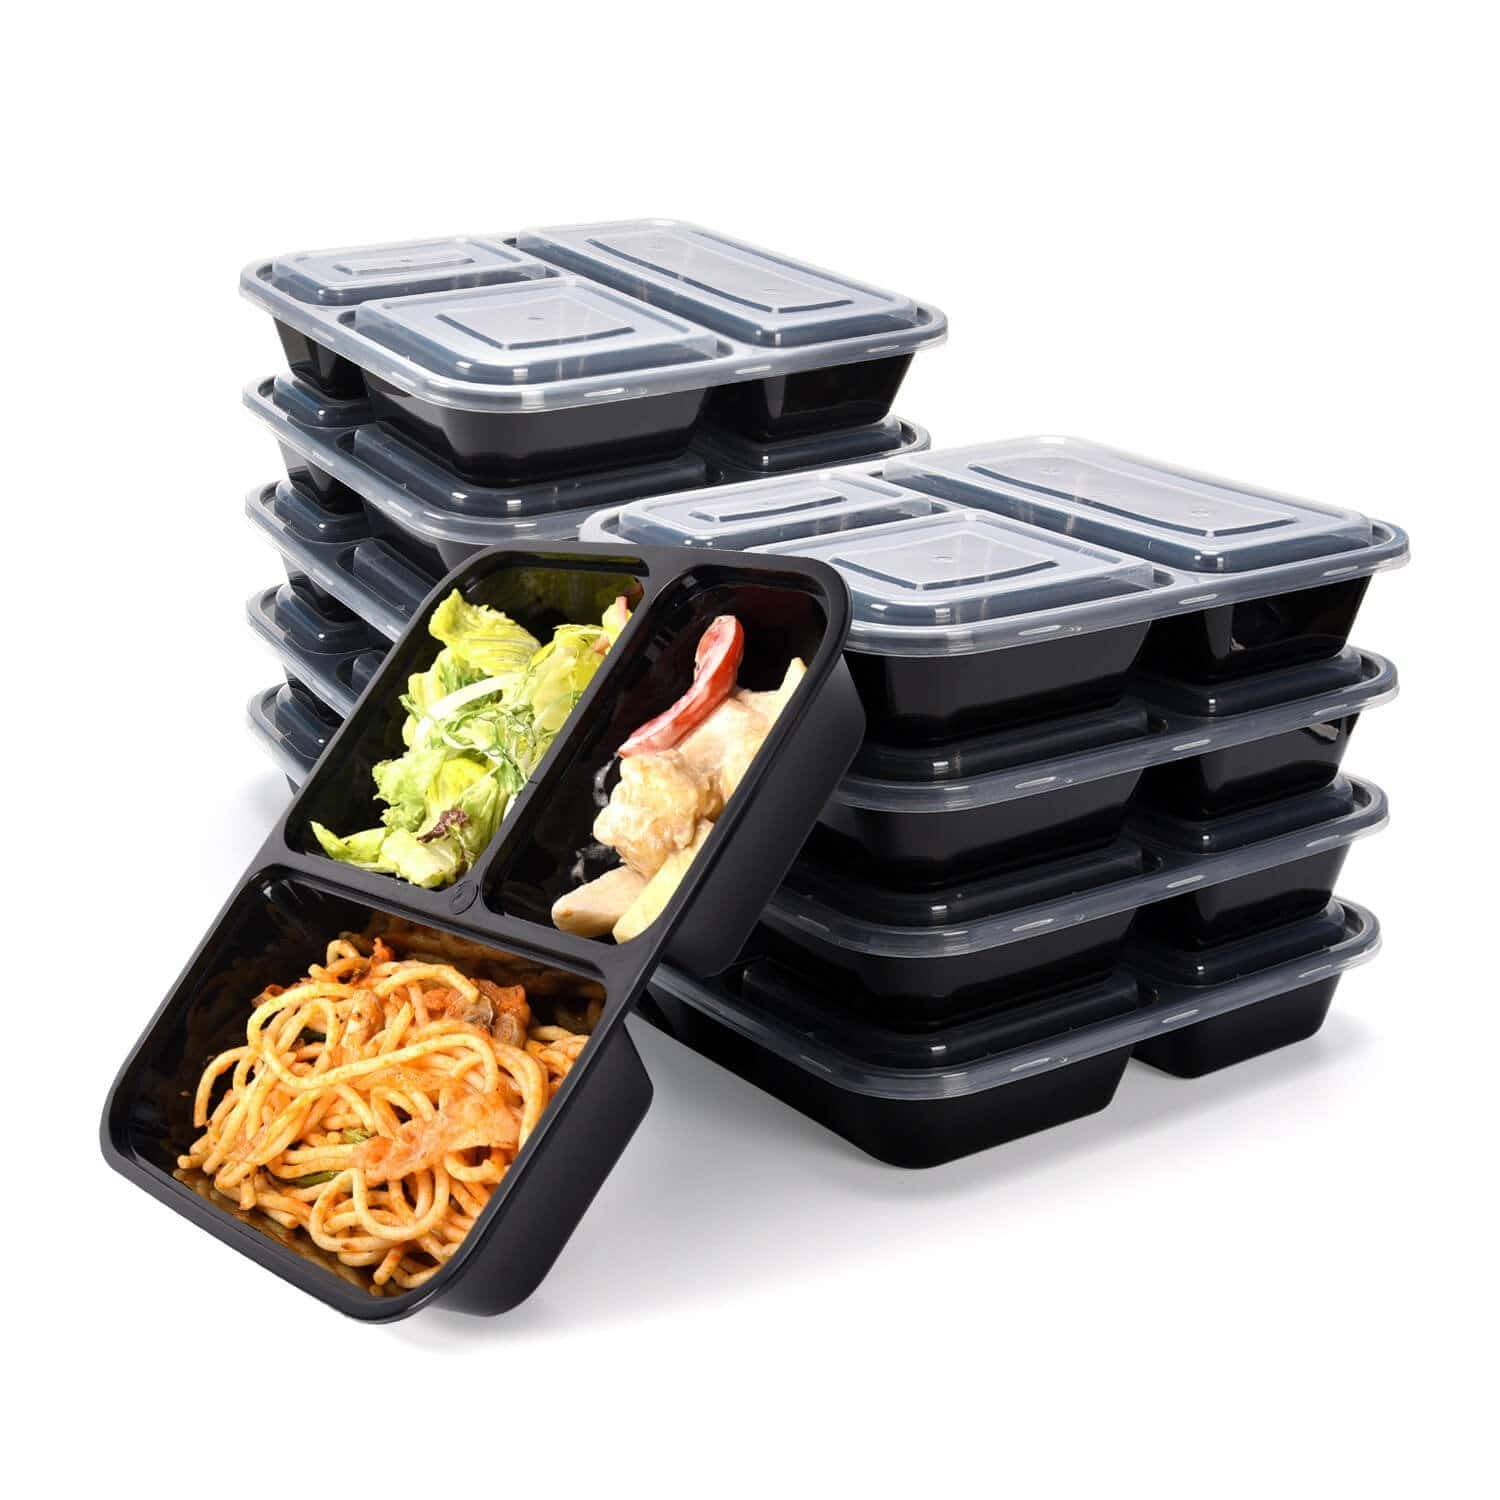 10-Pack Microwaveable Food Containers Meal Prep Storage Containers (3 Compartments)$8.99 at Amazon